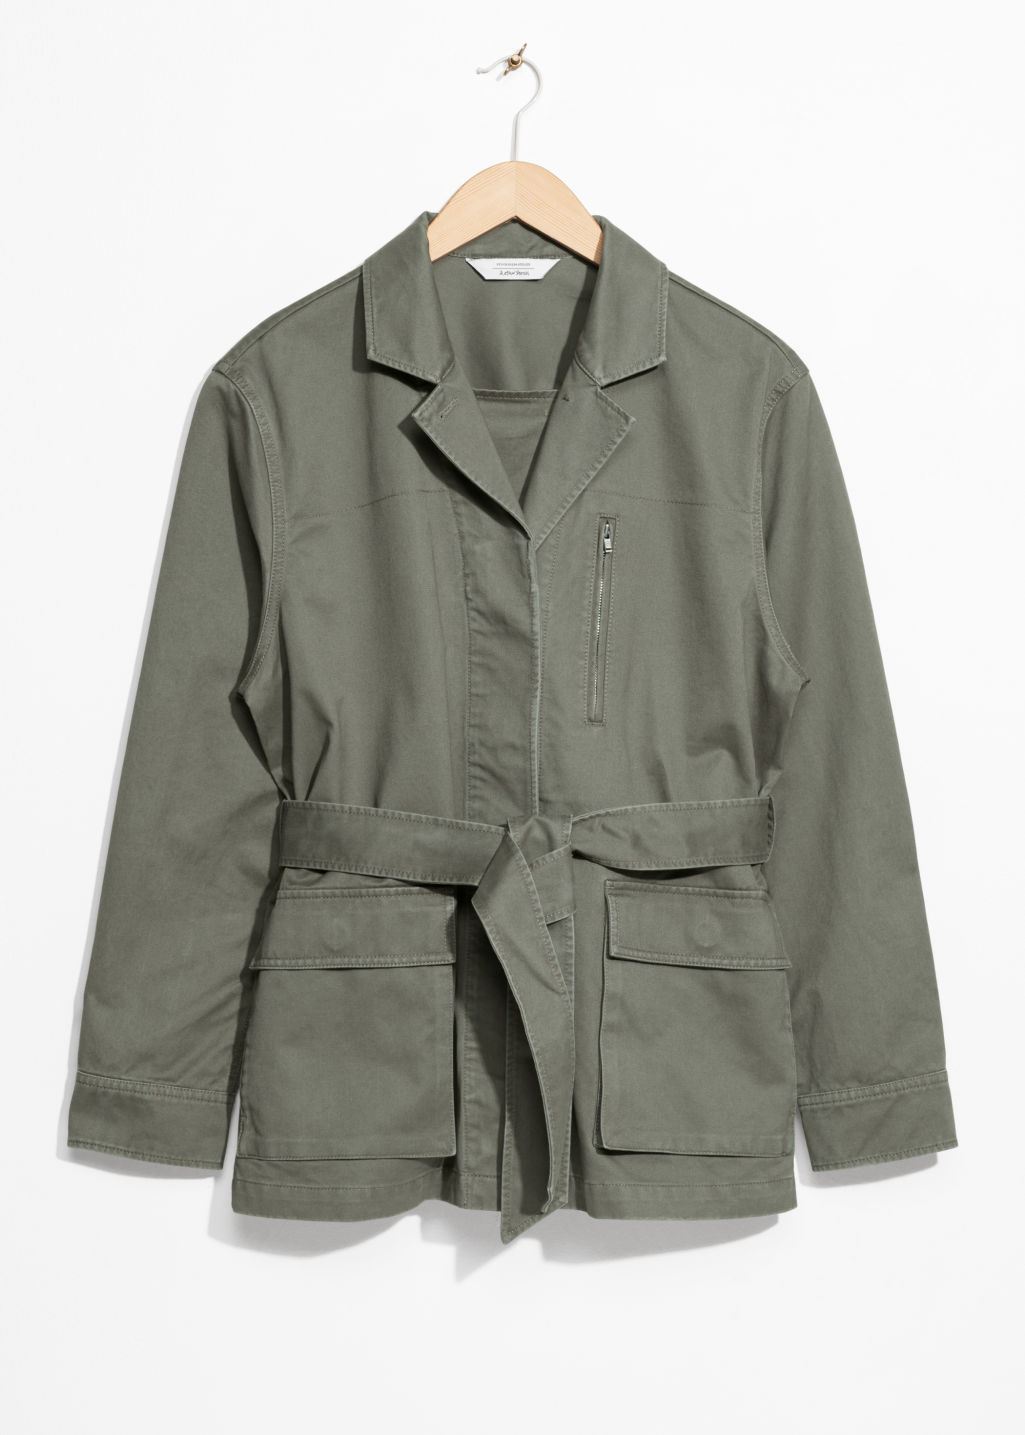 Belted Army Jacket - Khaki Green - Jackets -   Other Stories c7e841b78